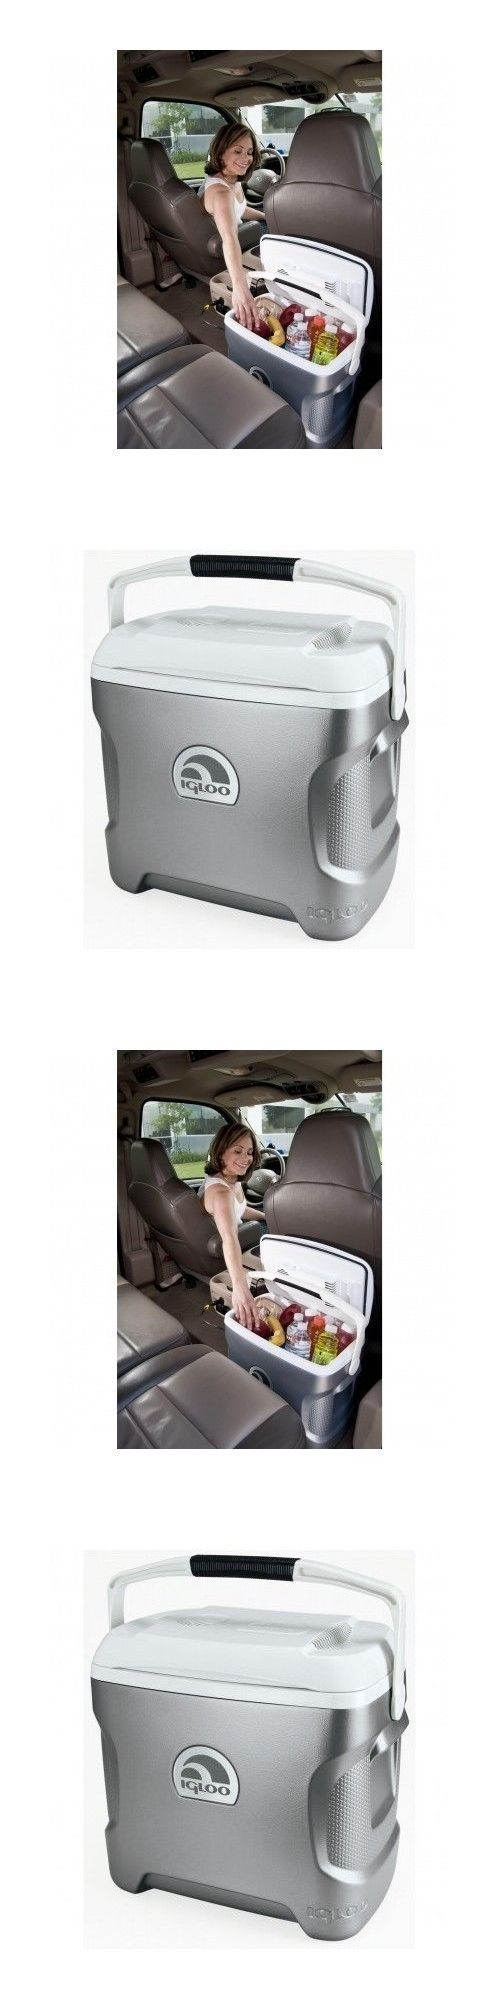 12-Volt Portable Appliances: Iceless Travel Cooler Car Refrigerator Portable Fridge Thermoelectric 12V Dc 28Q -> BUY IT NOW ONLY: $99.95 on eBay!